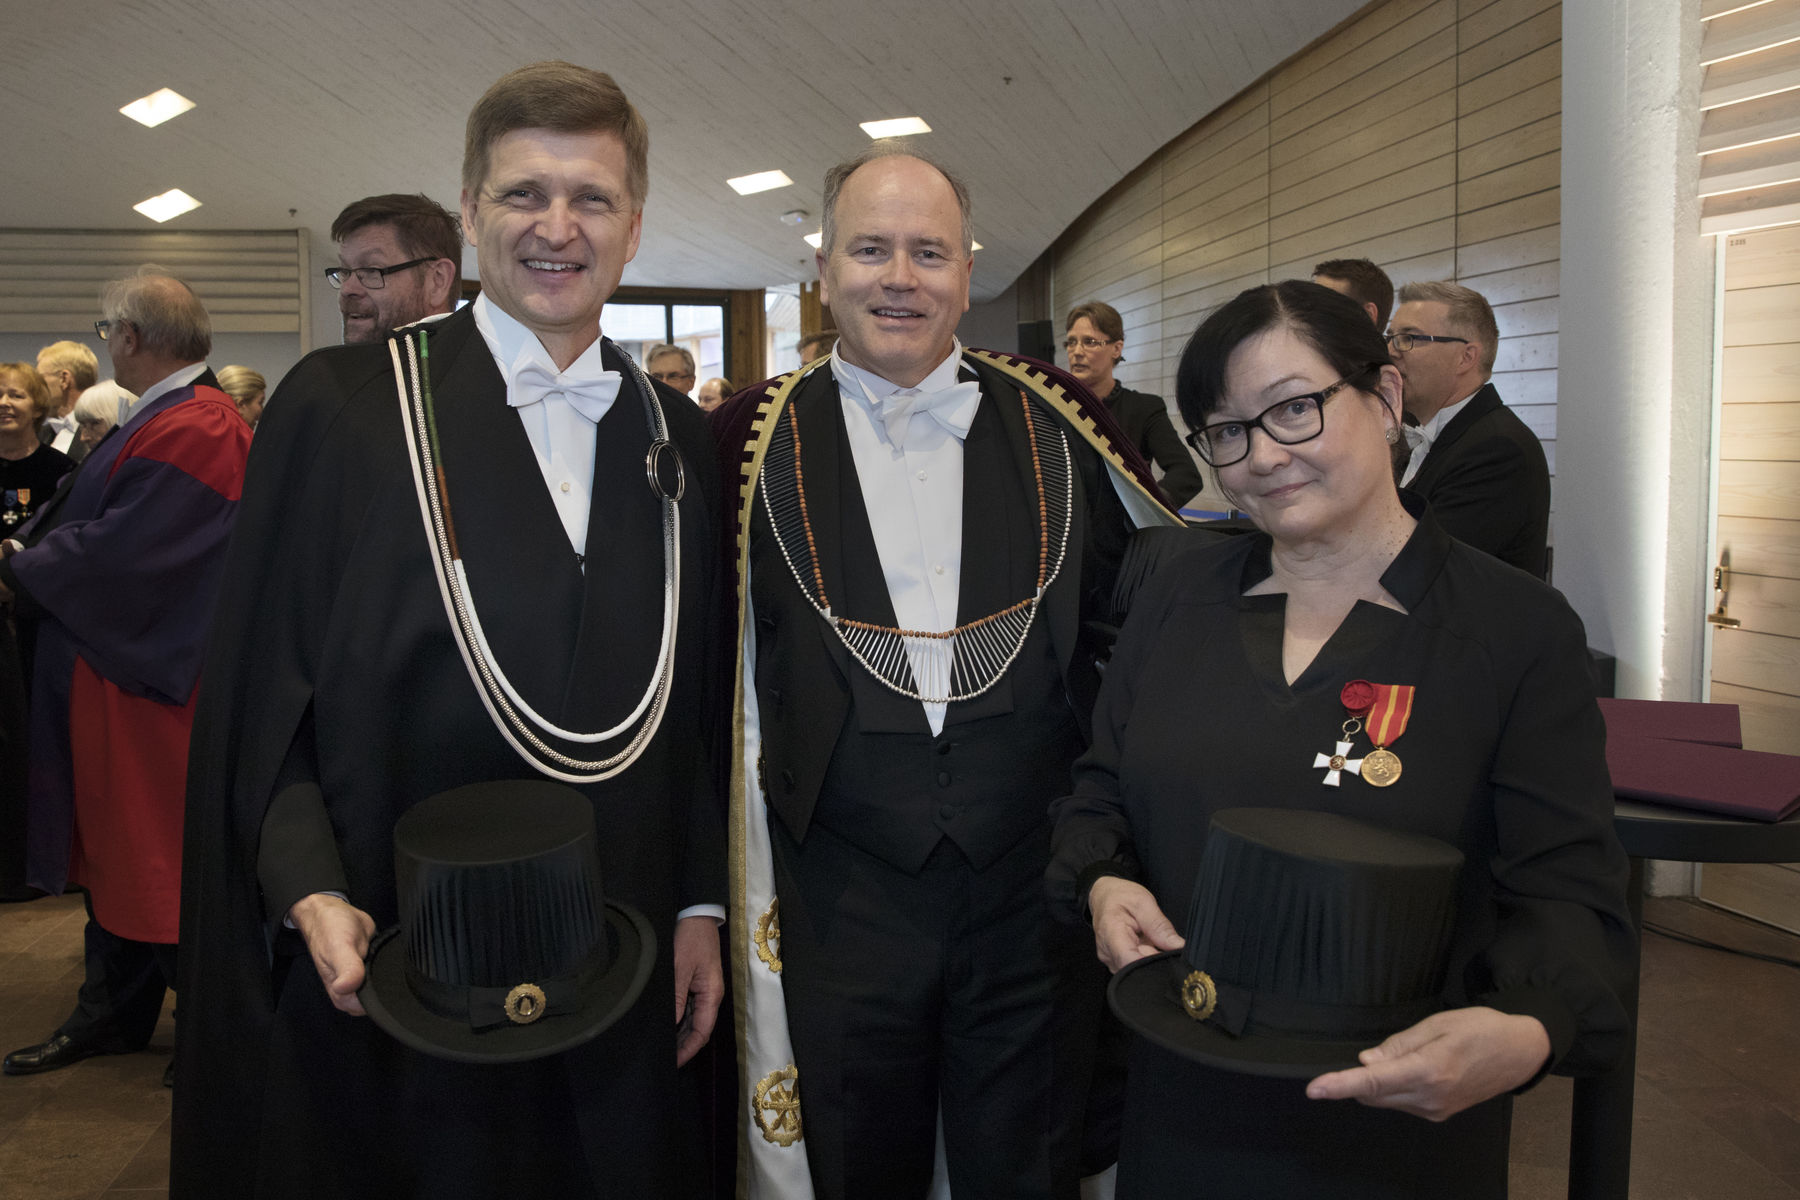 From left: President Niemelä, Dean Marquis and Conferrer Virrantaus